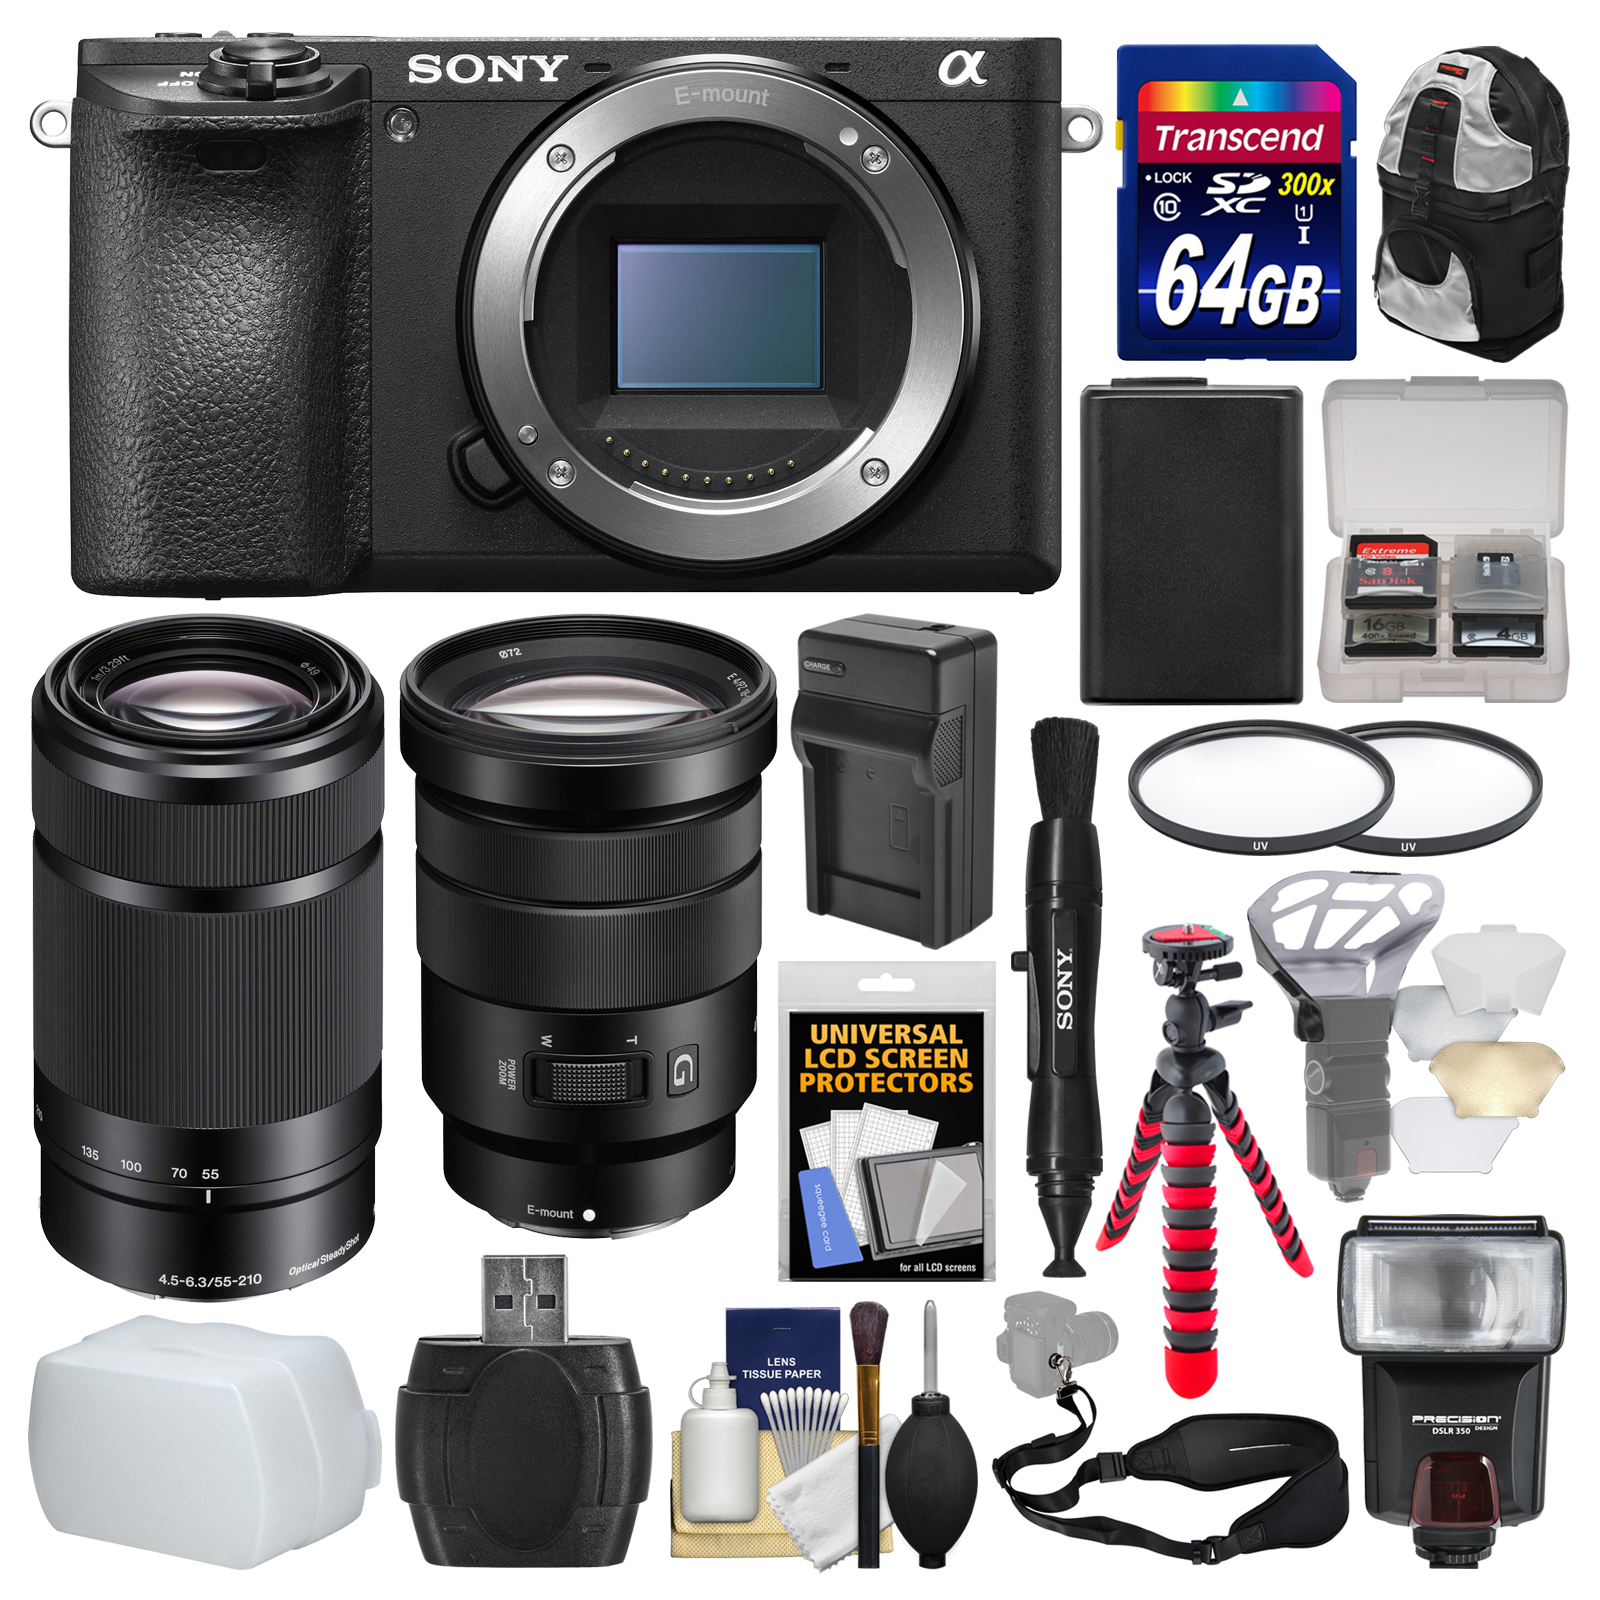 Sony Alpha A6500 4K Wi-Fi Digital Camera Body with 18-105mm f 4 & 55-210mm Lenses + 64GB Card + Backpack +... by Sony